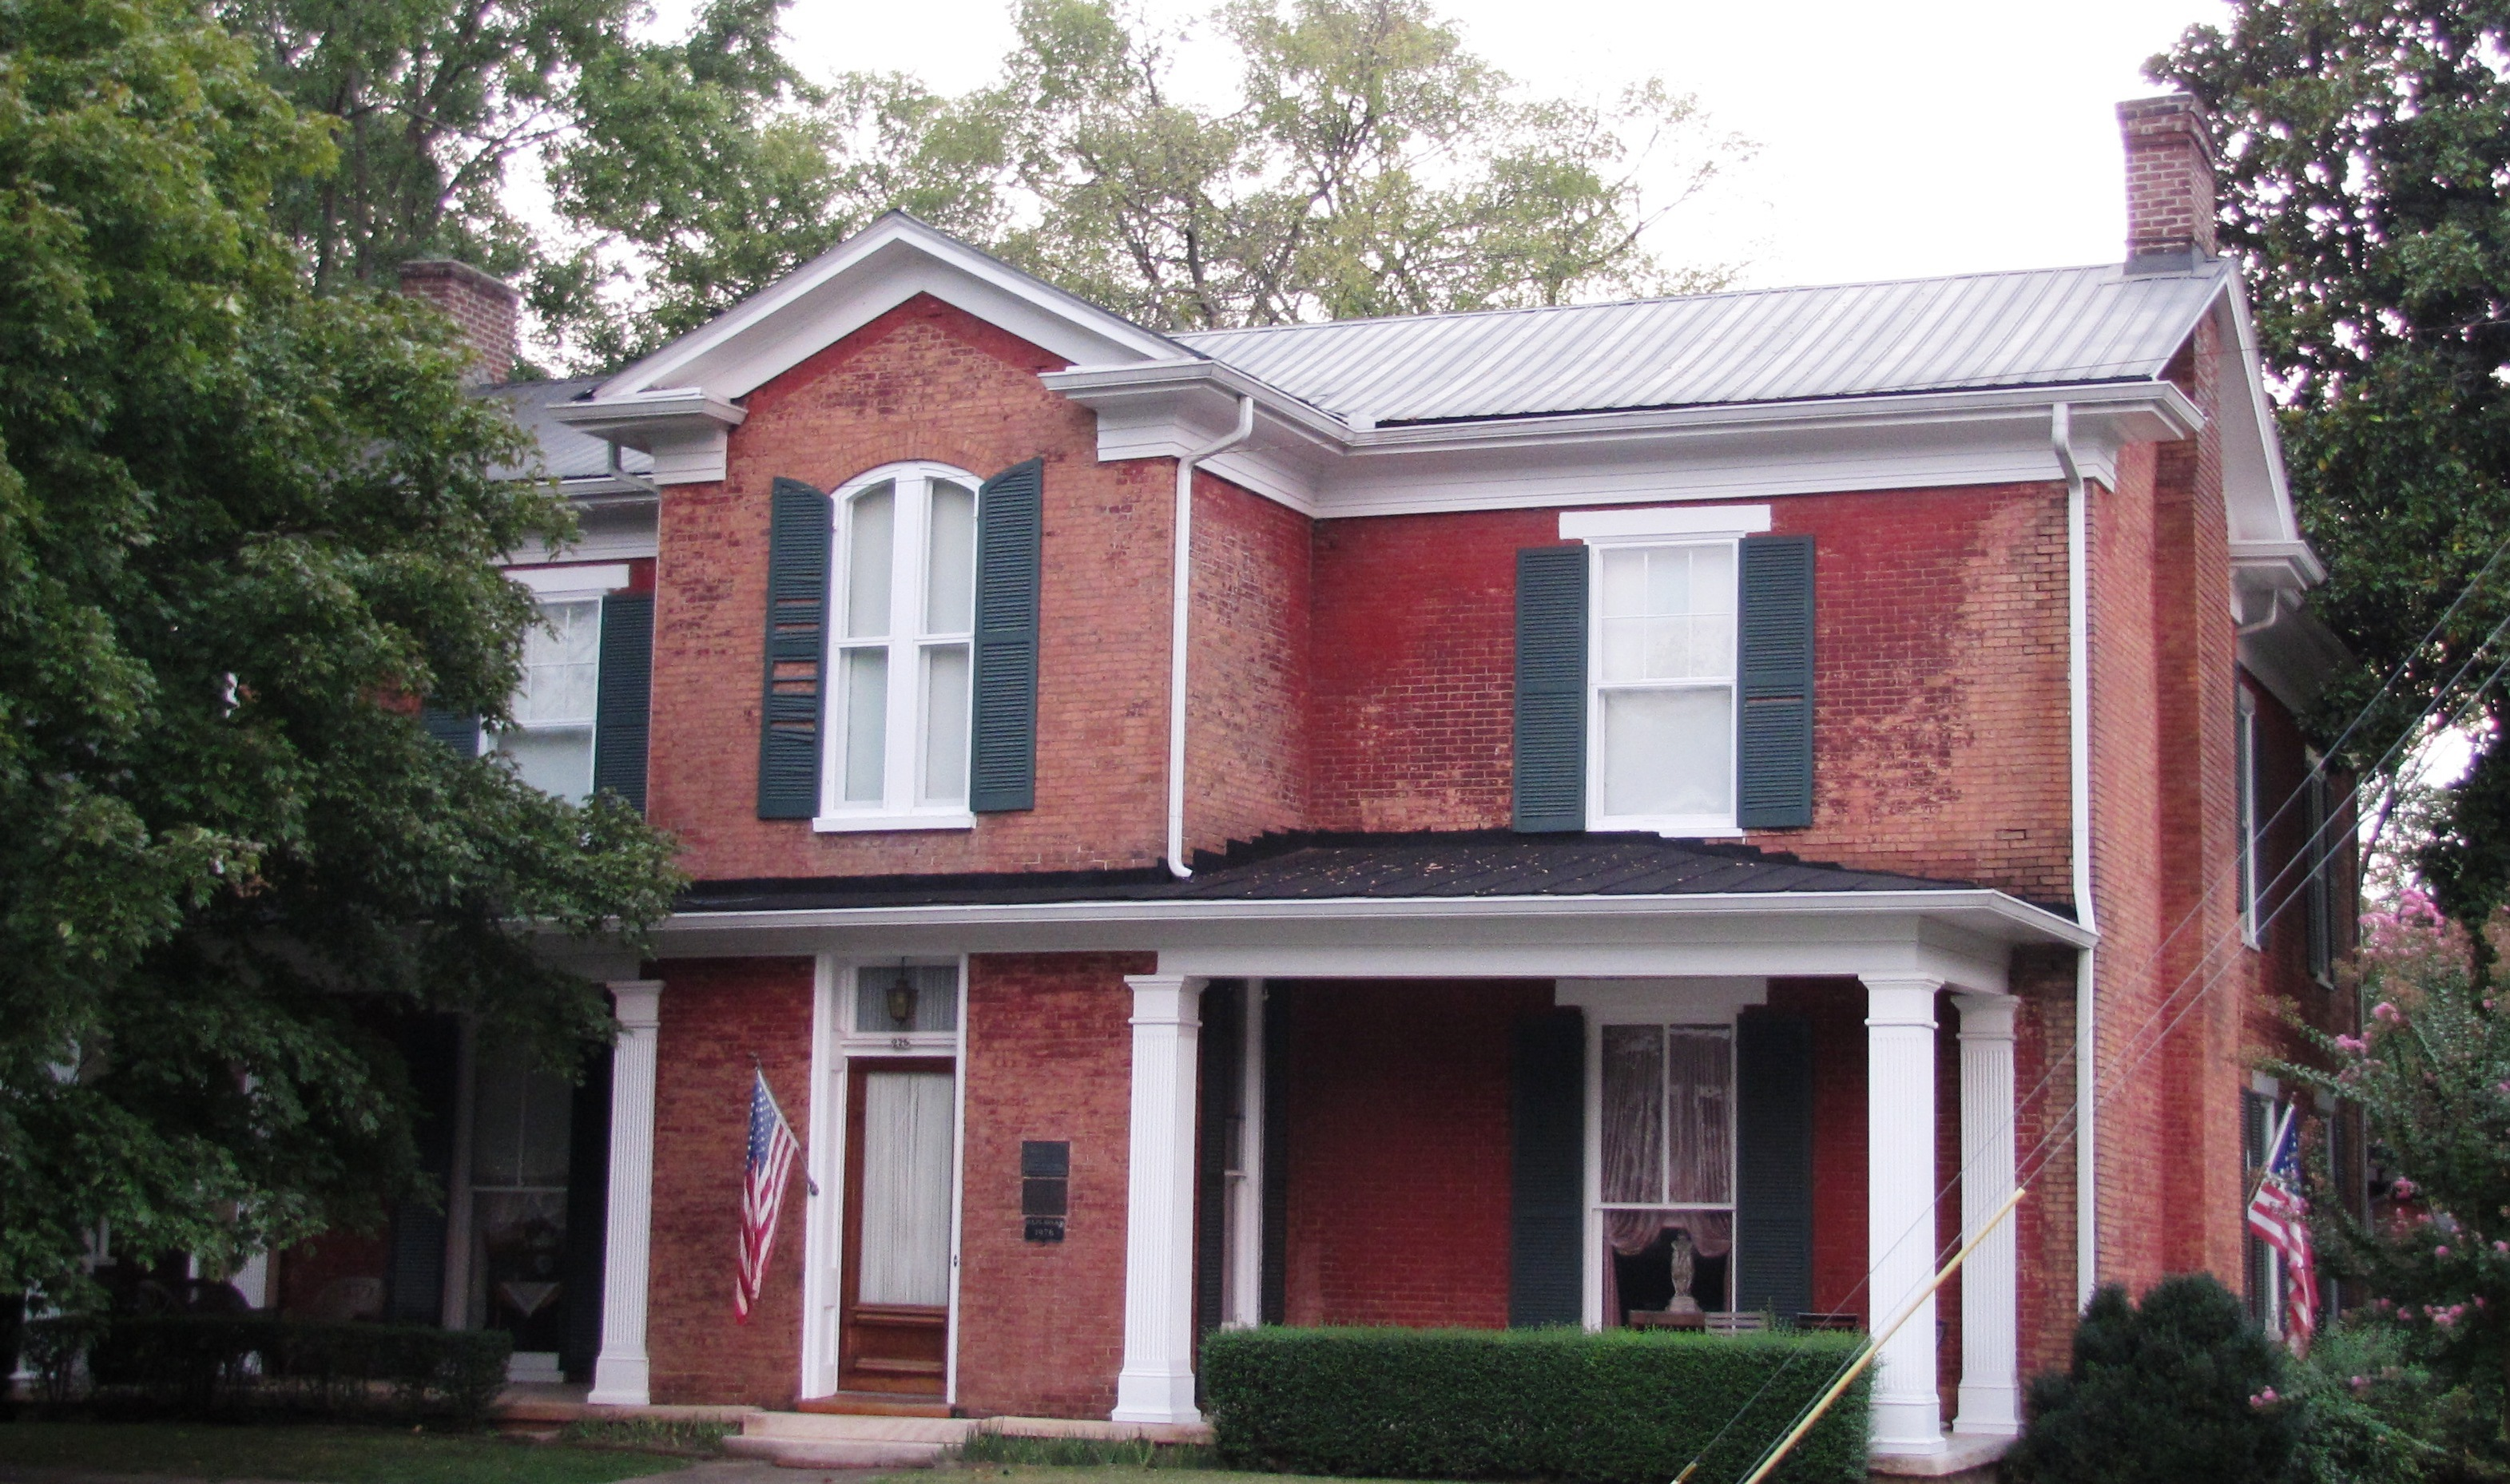 Built in 1847, the Childress-Ray House displays elements of Greek Revival, Italianate, and Colonial Revival style architecture. Image obtained from Wikimedia.